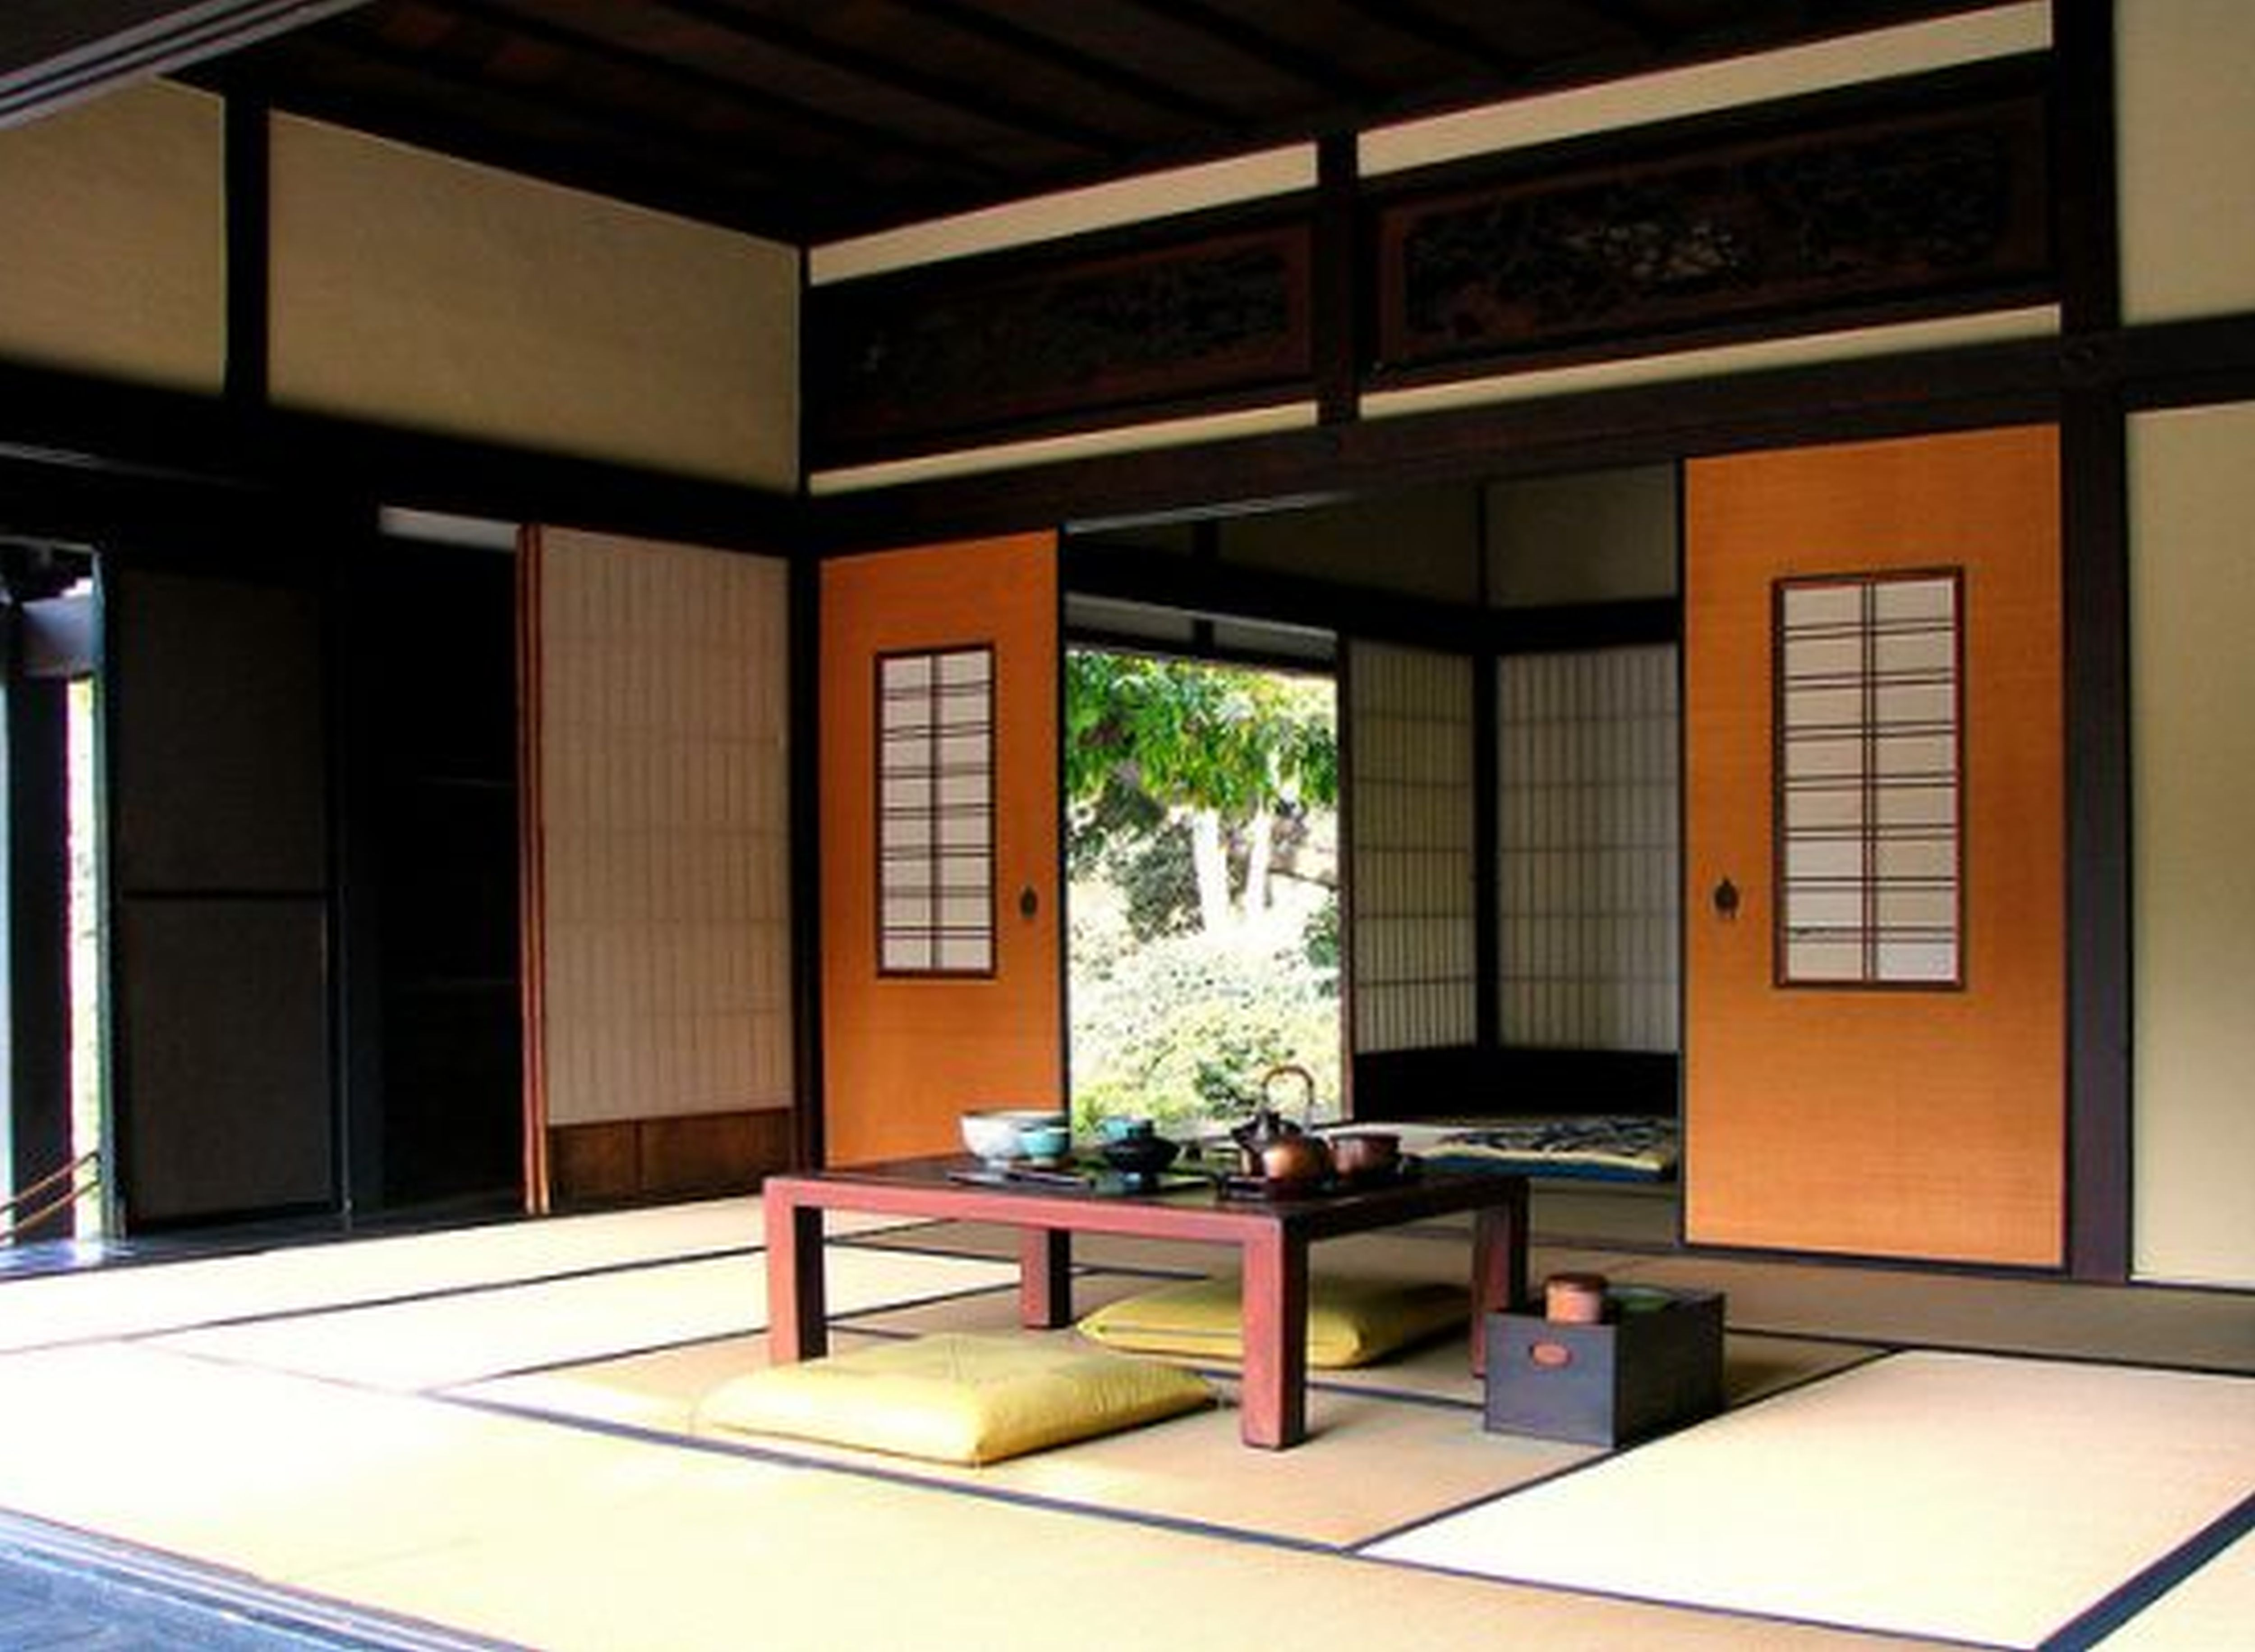 Japanese Style In Interior Design | Home Interior And